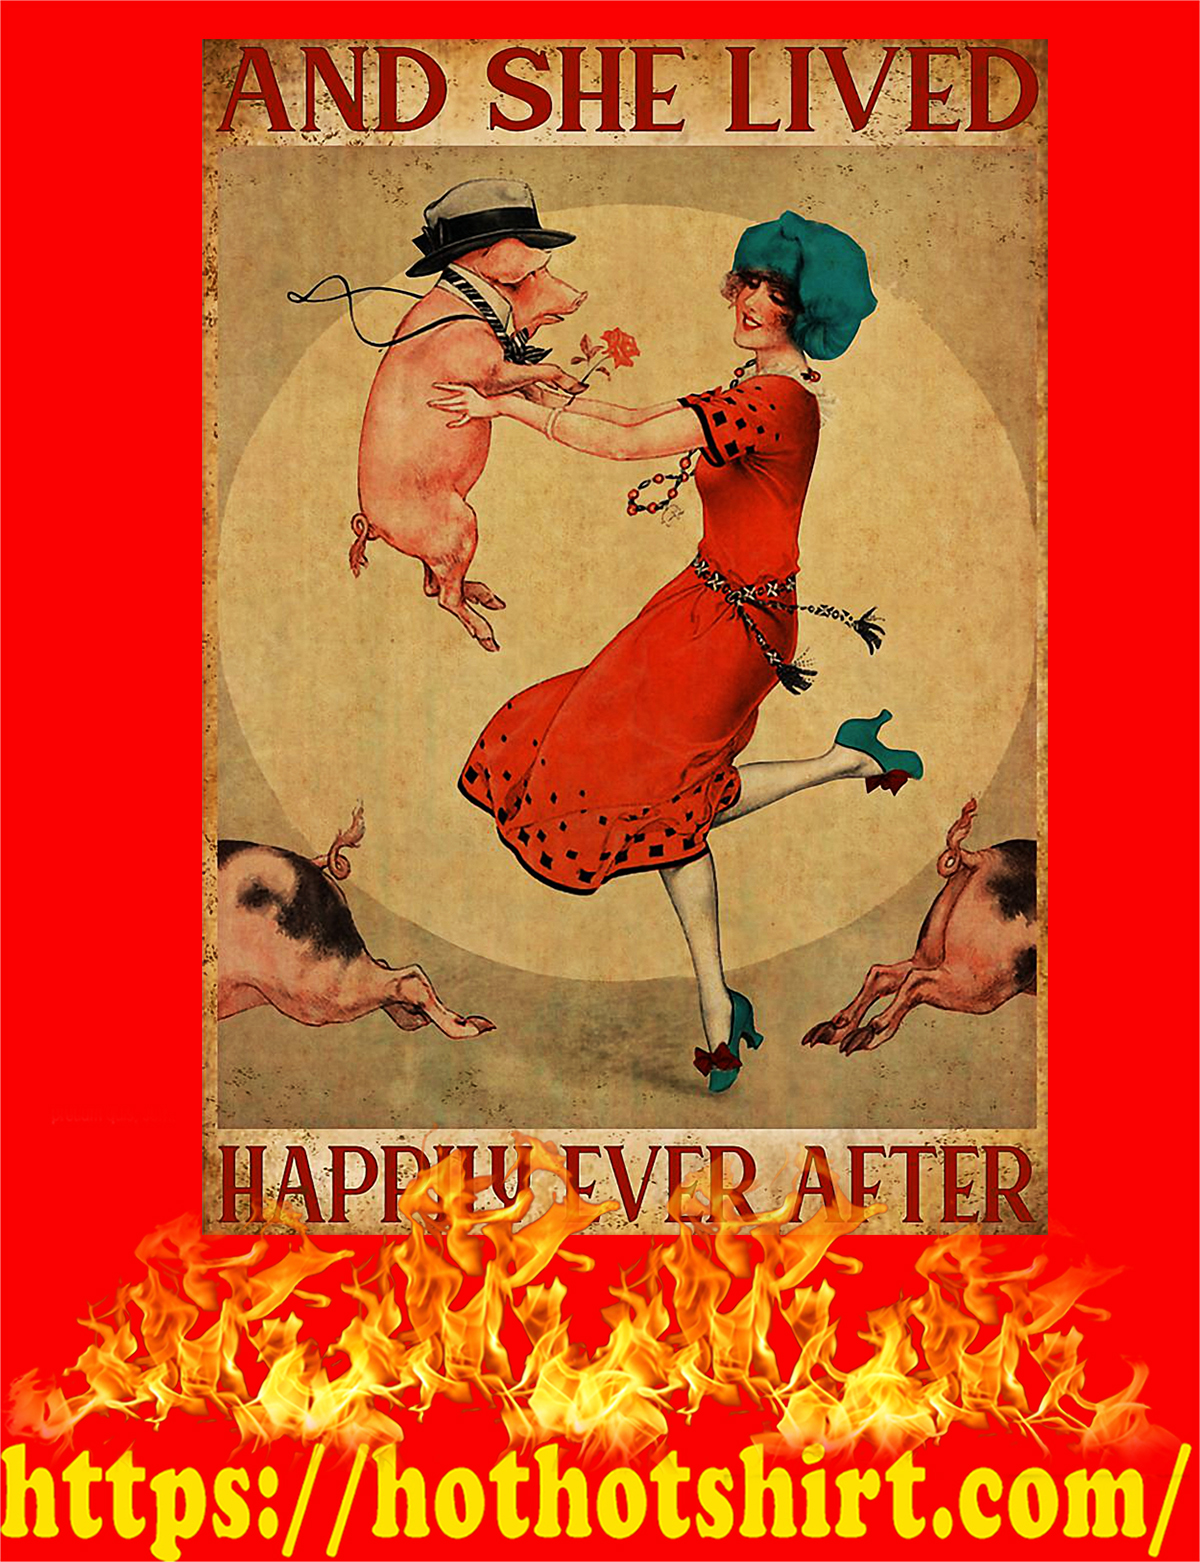 Pig And she lived happily ever after poster - A3